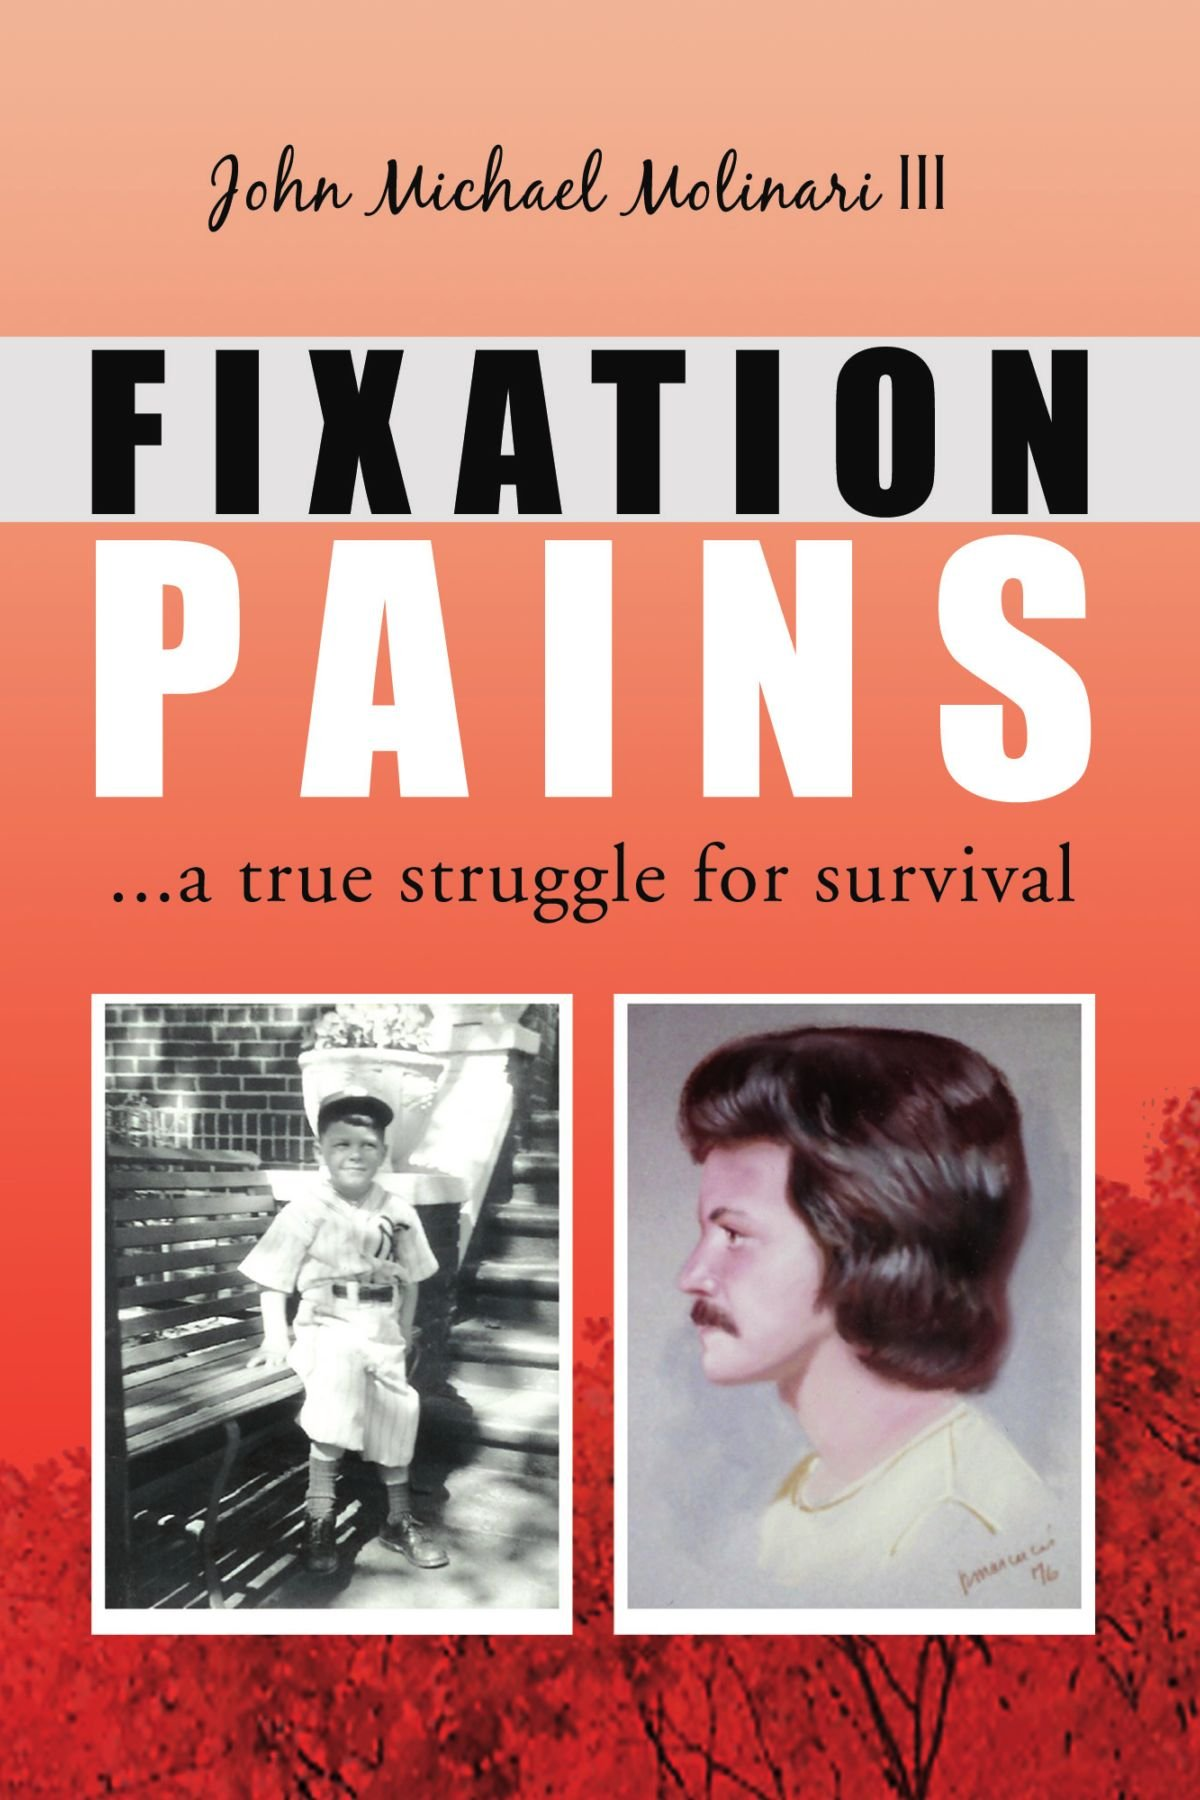 FIXATION PAINS:...a true struggle for survival